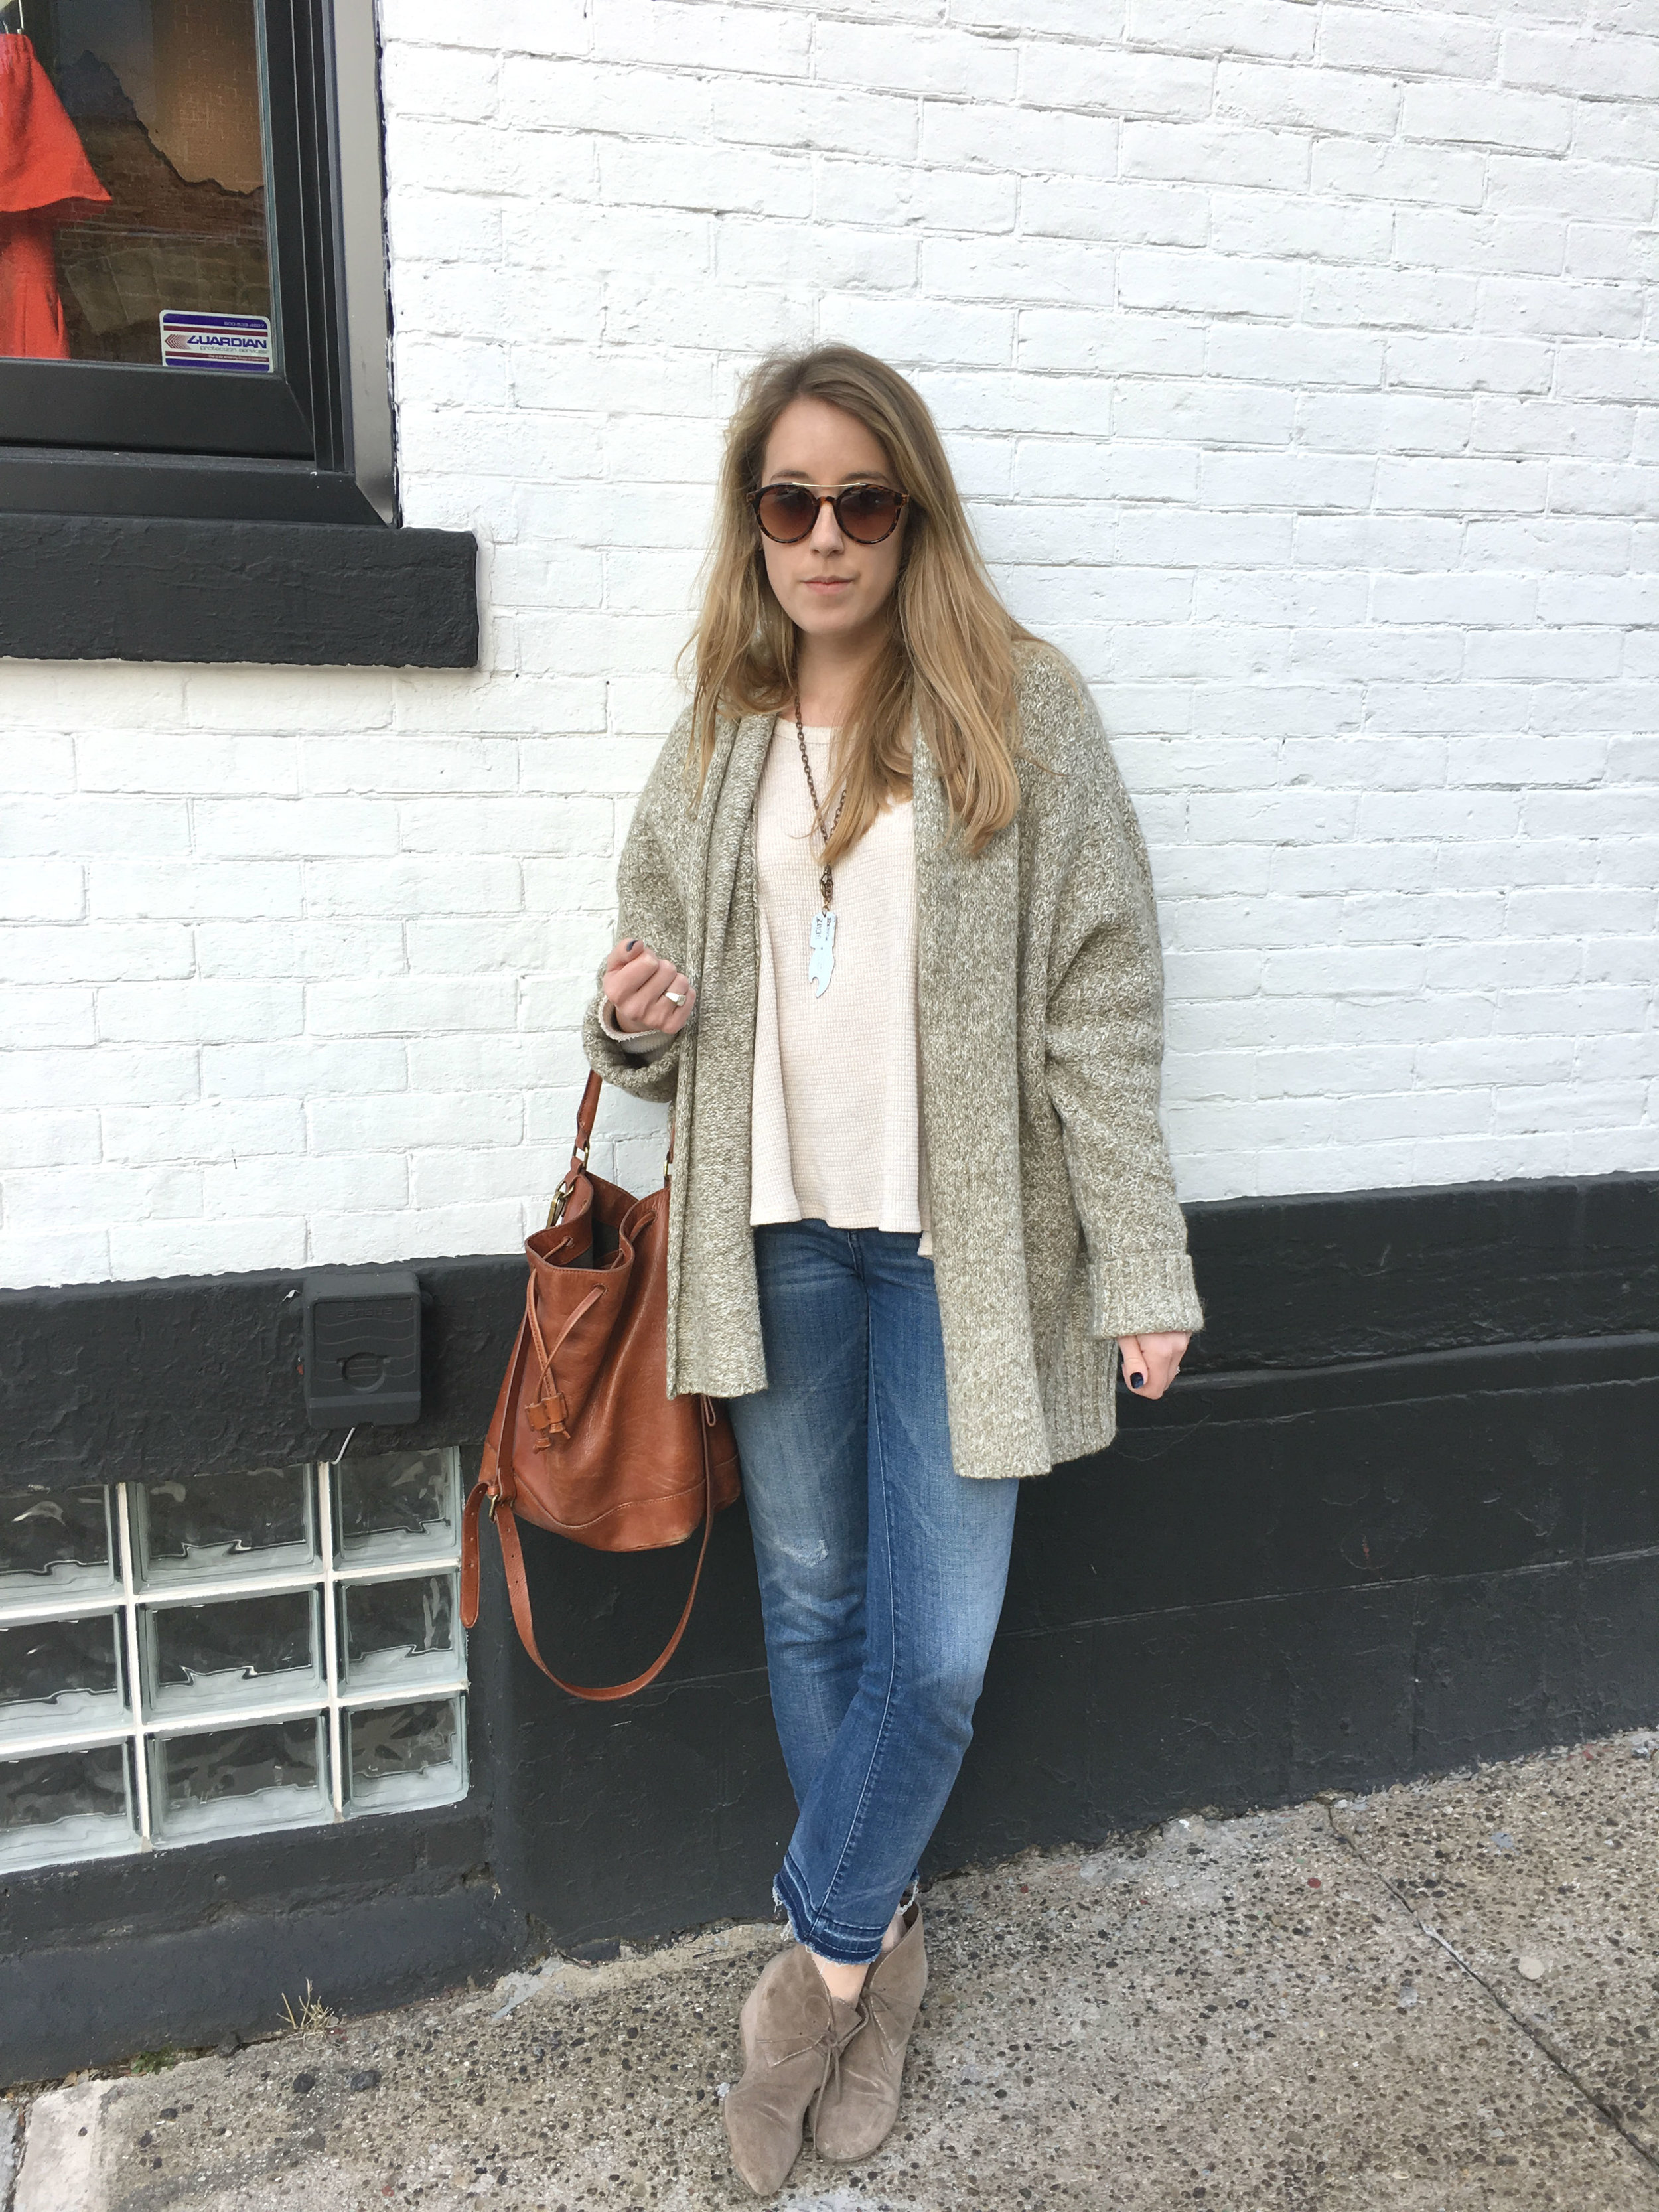 Wearing: Simple Spring Travel Outfits